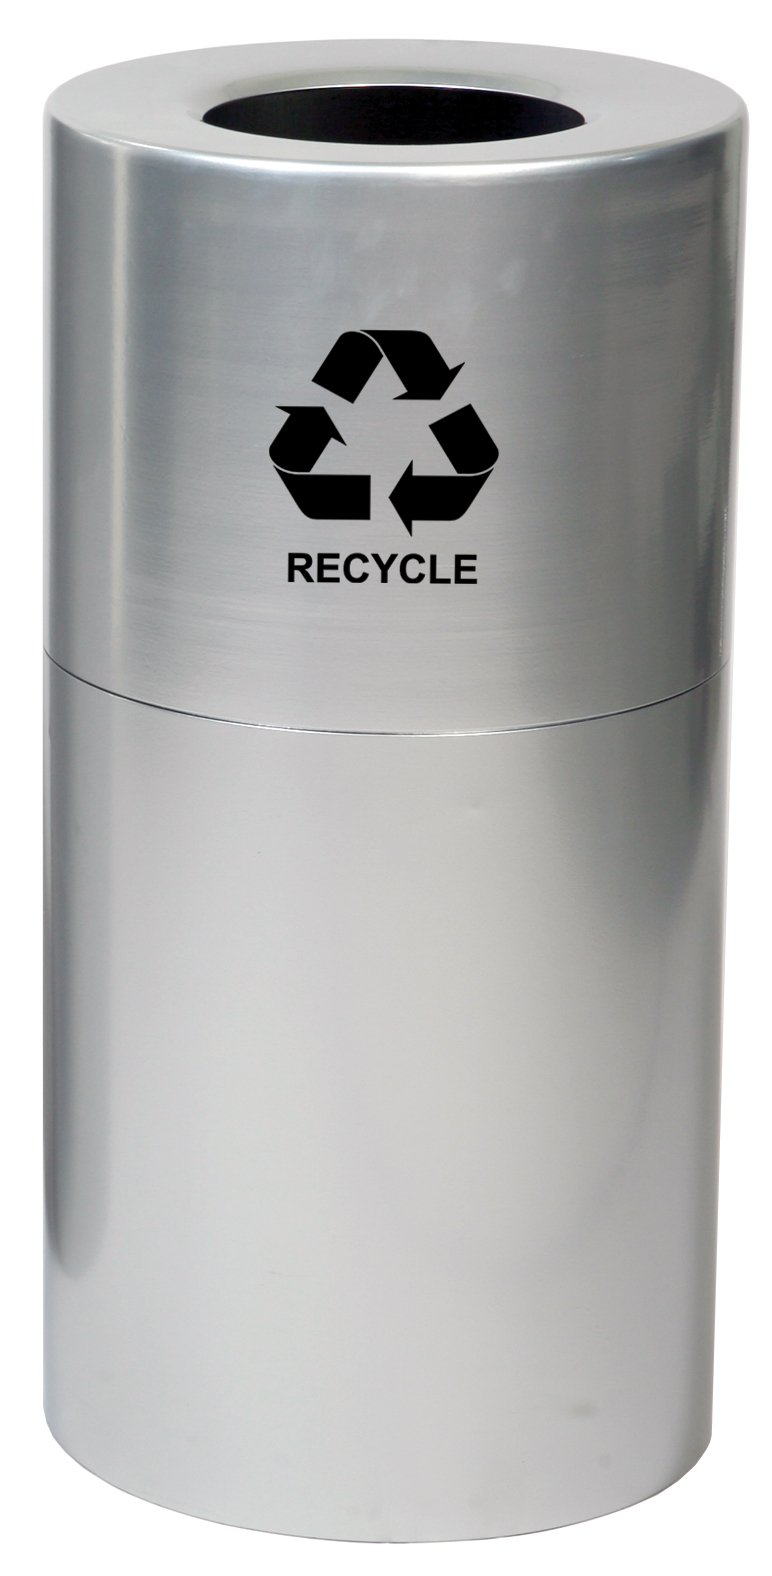 Witt Industries AL18-CLR-R Aluminum 24-Gallon Decorative Recycling Receptacle with Rigid Plastic Liner, Legend ''Recycle'', Round, 15'' Diameter x 30-1/2'' Height, Clear Coat by Witt Industries